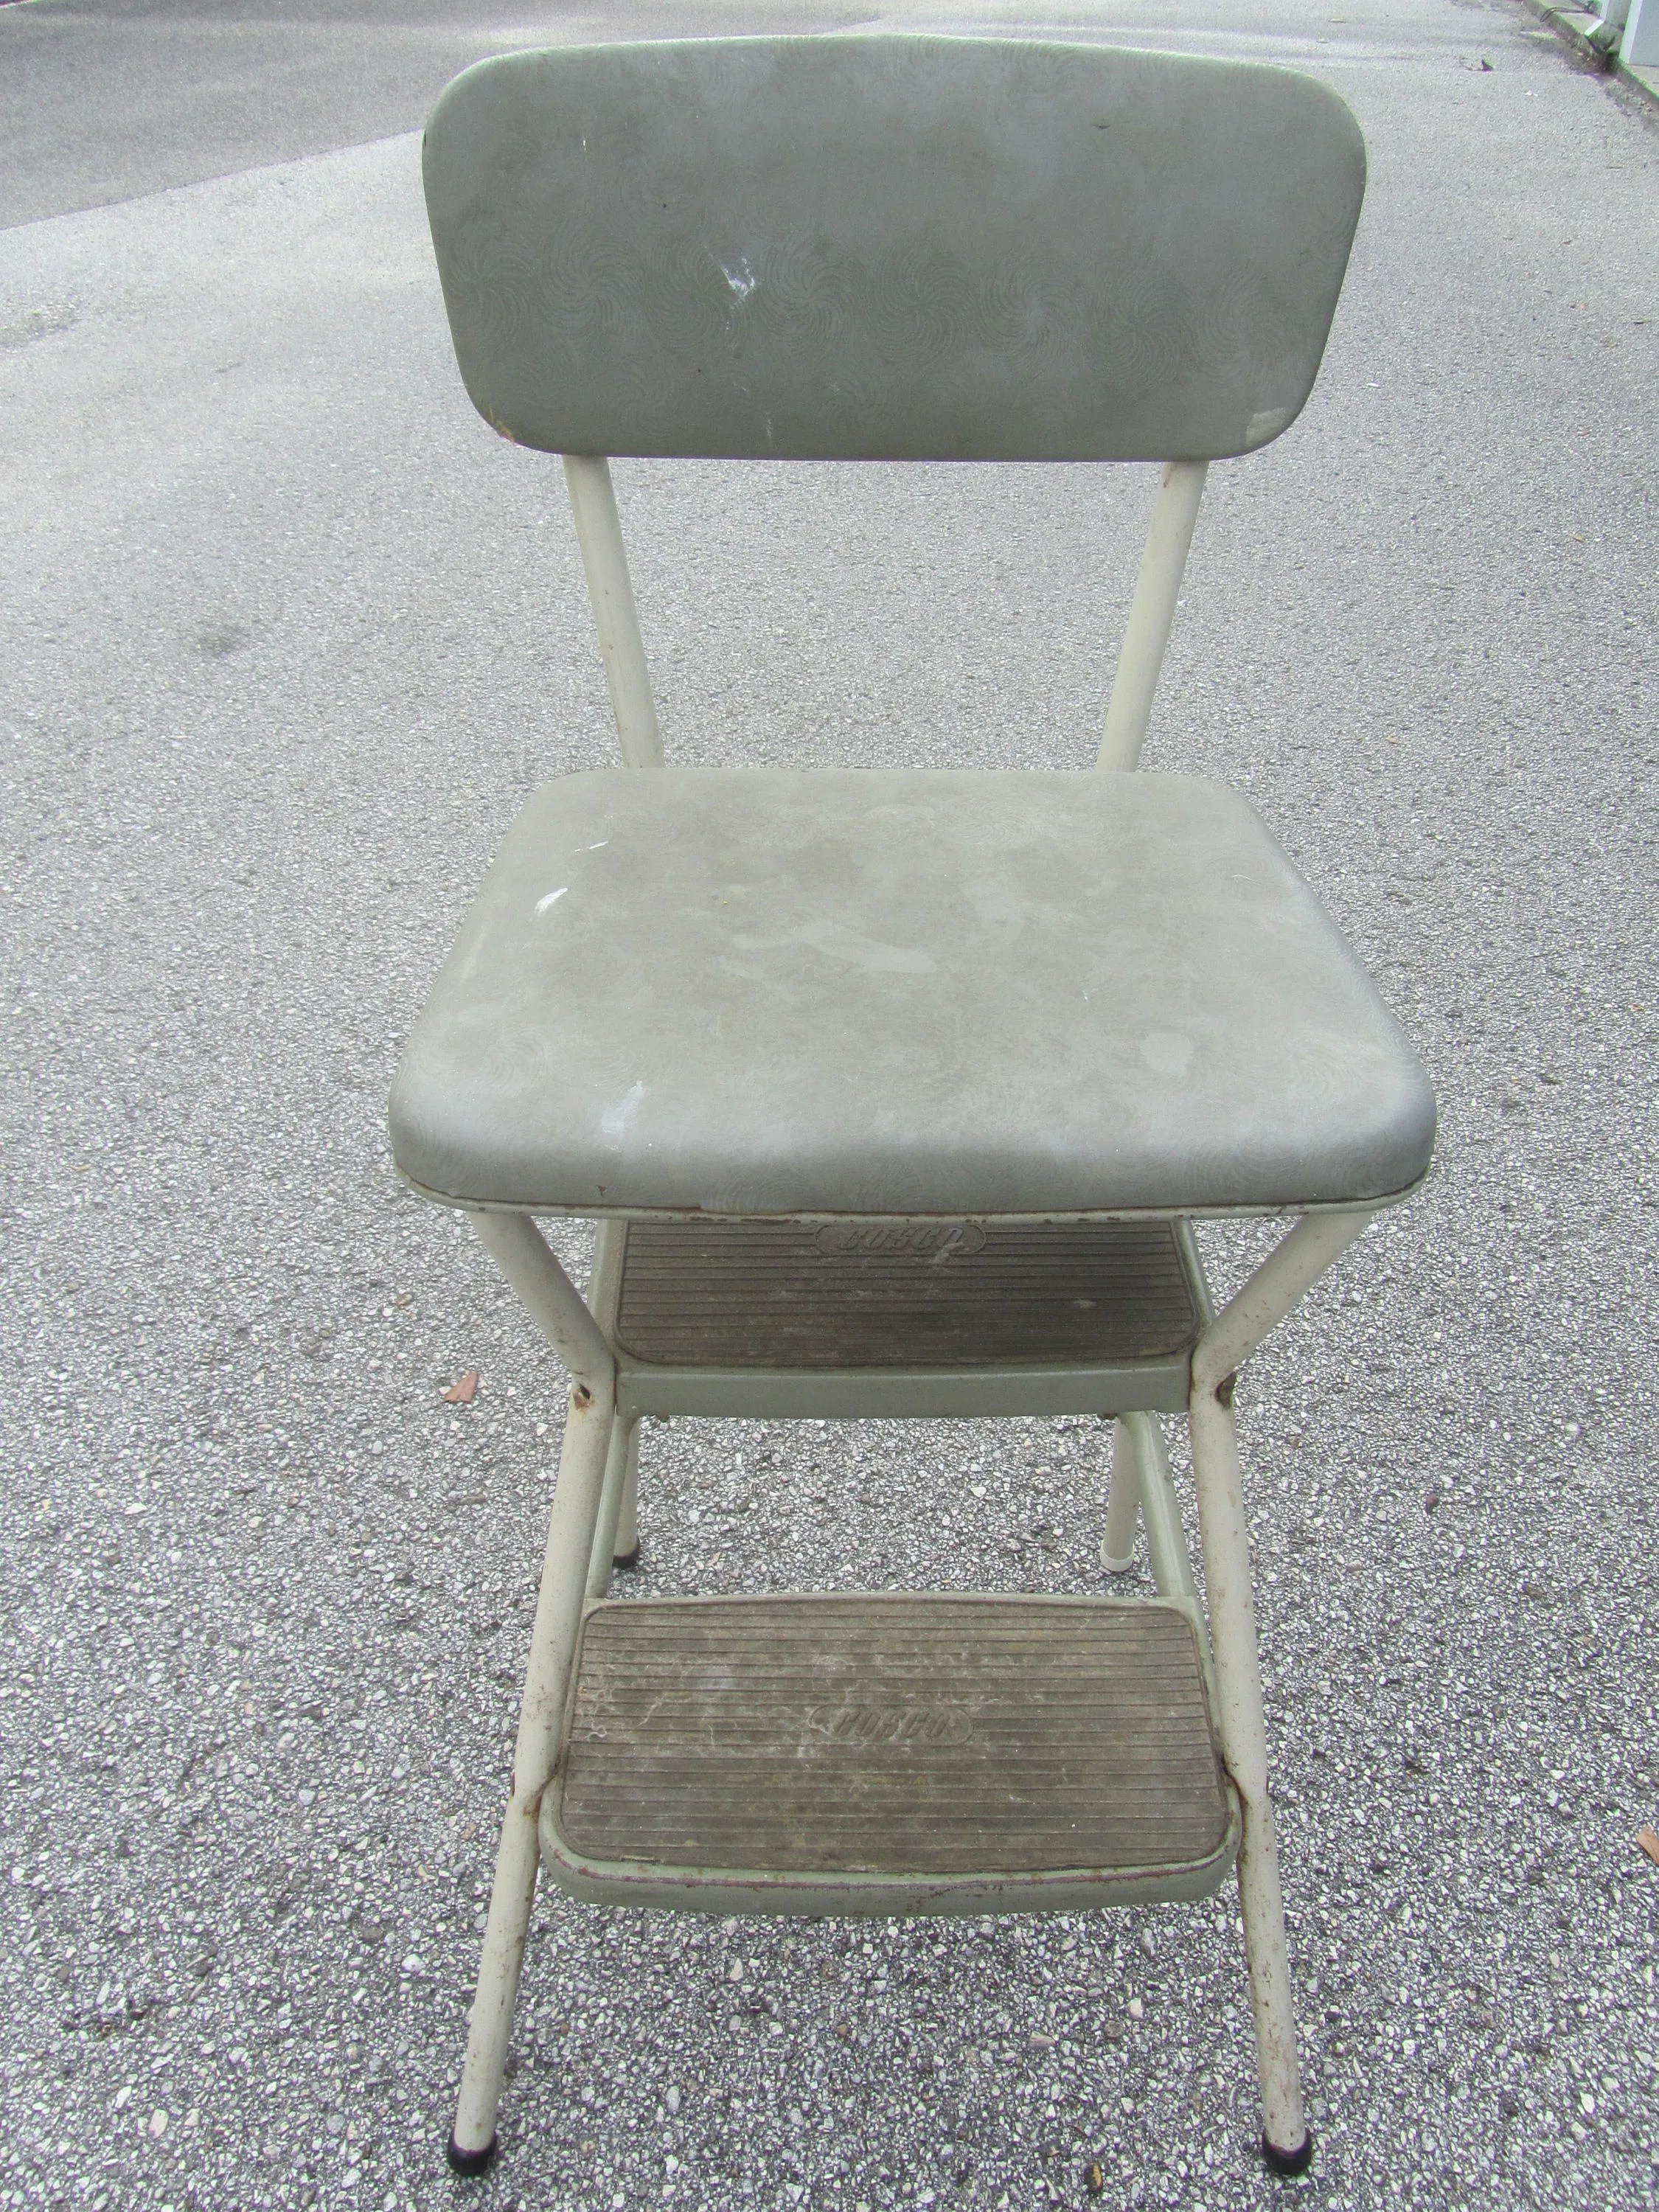 Metal Step Stool Vintage Cosco Metal Step Stool Step Chair Stool Step Ladder Folding Step Stool Kitchen Stool Photo Prop Gray Green Step Stool